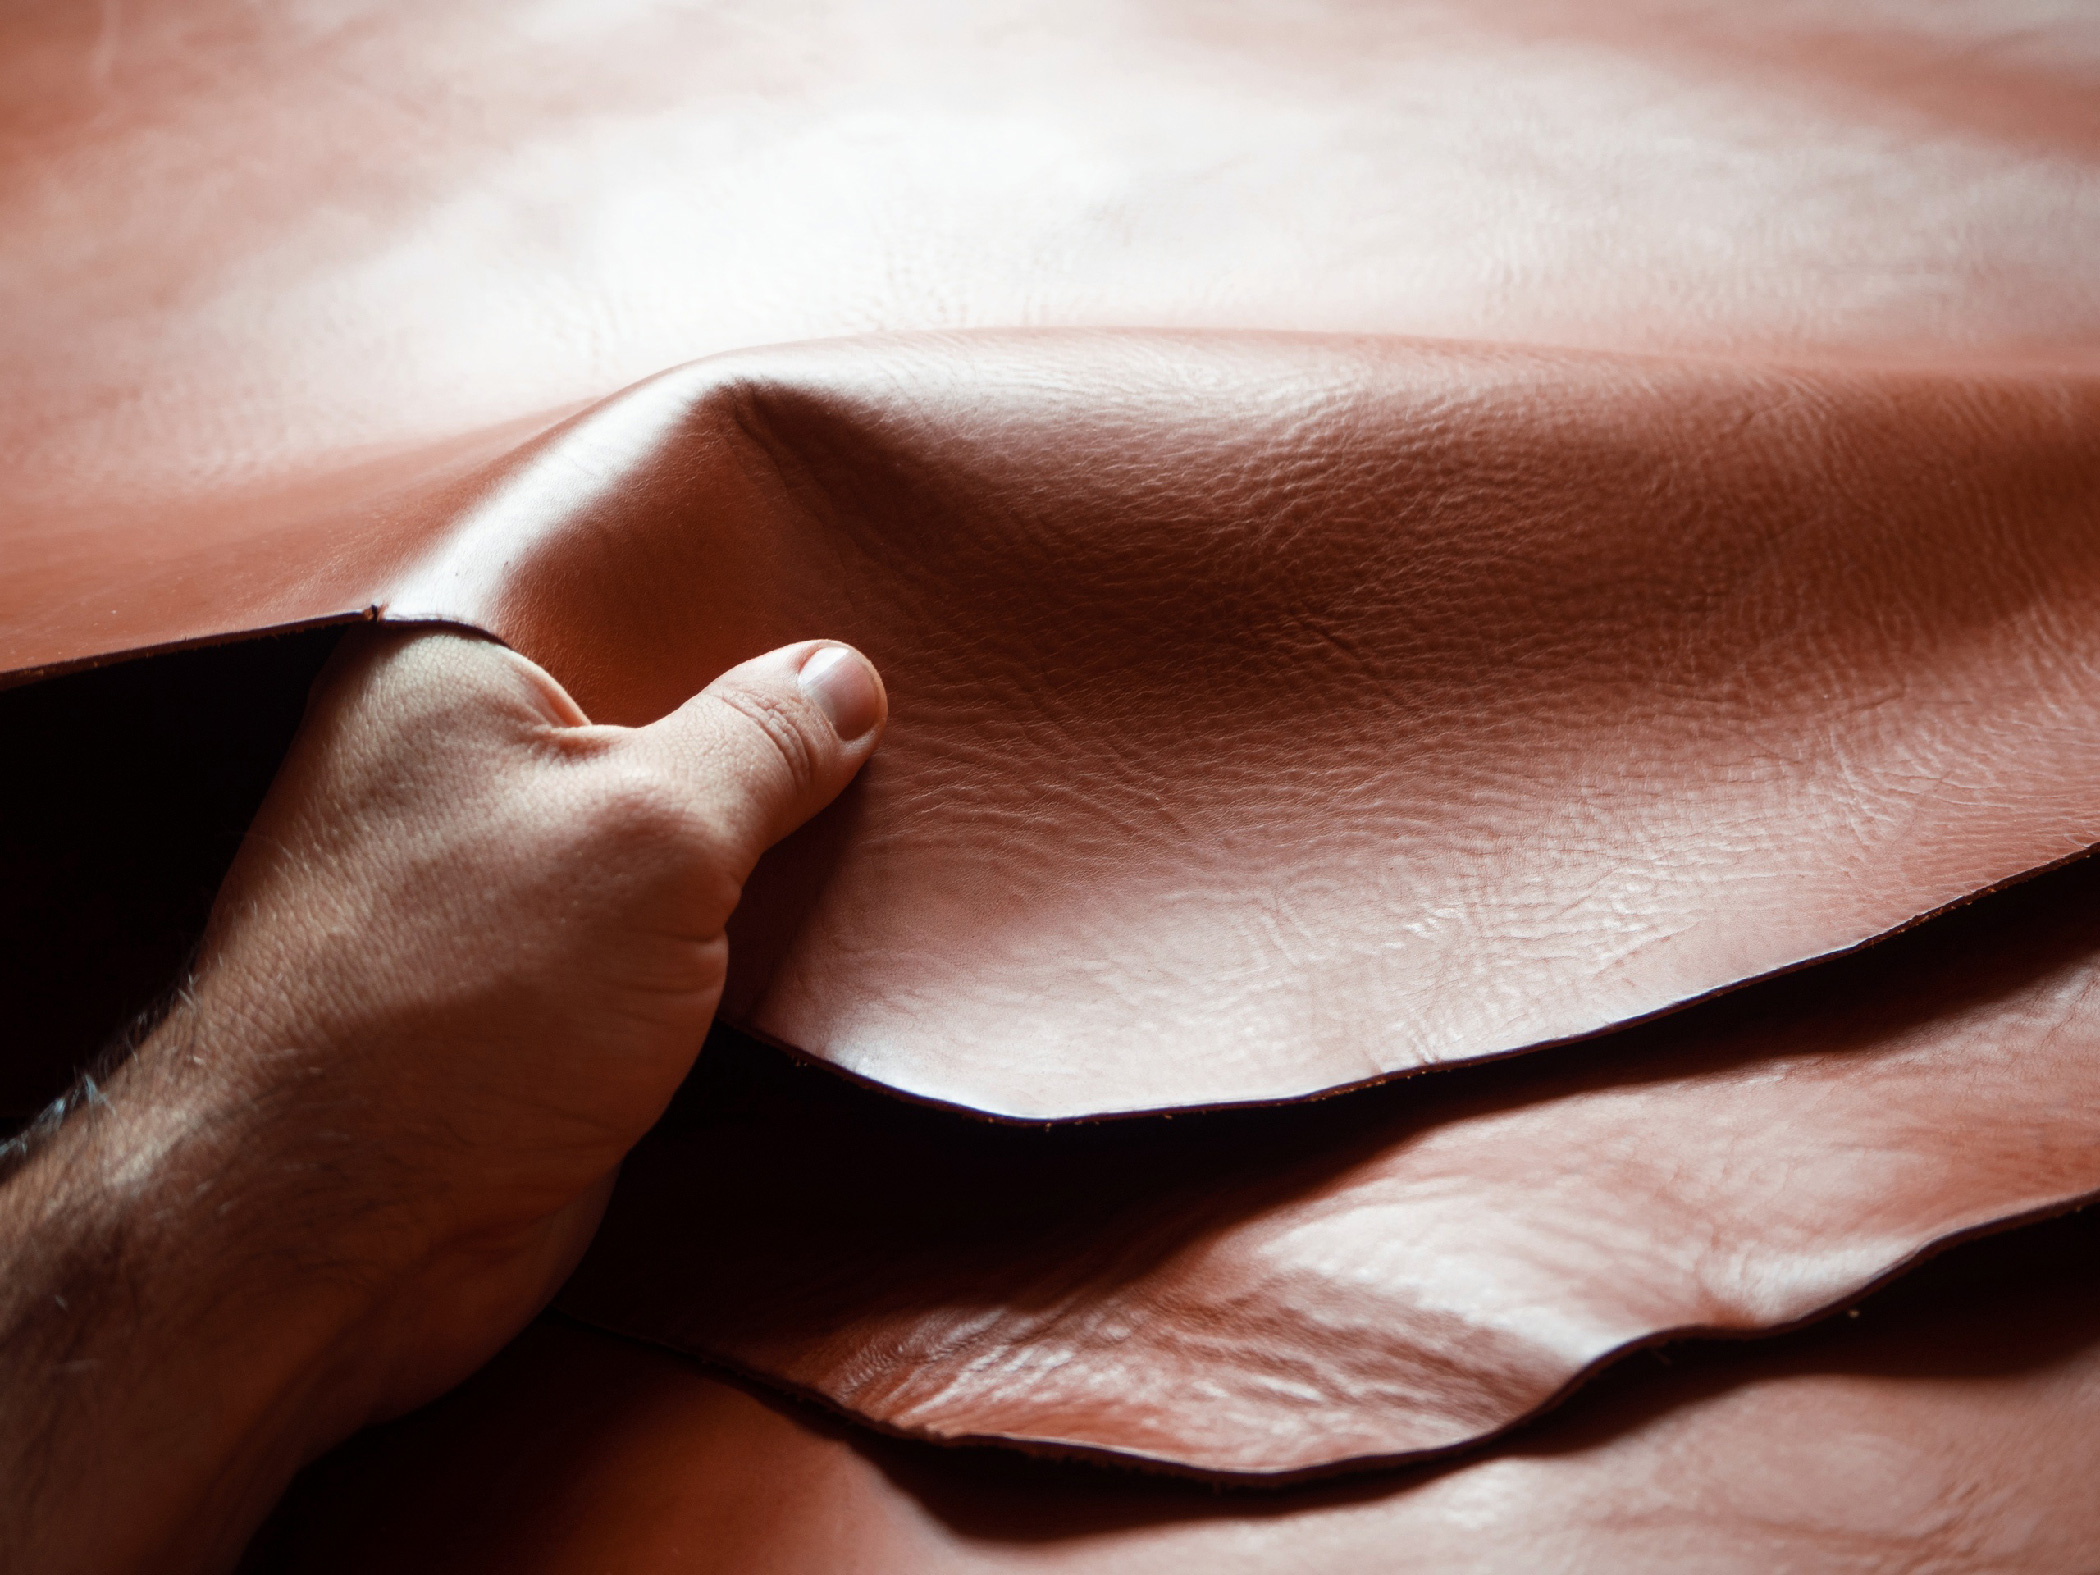 Responsible technologies produce high-end automotive leathers.